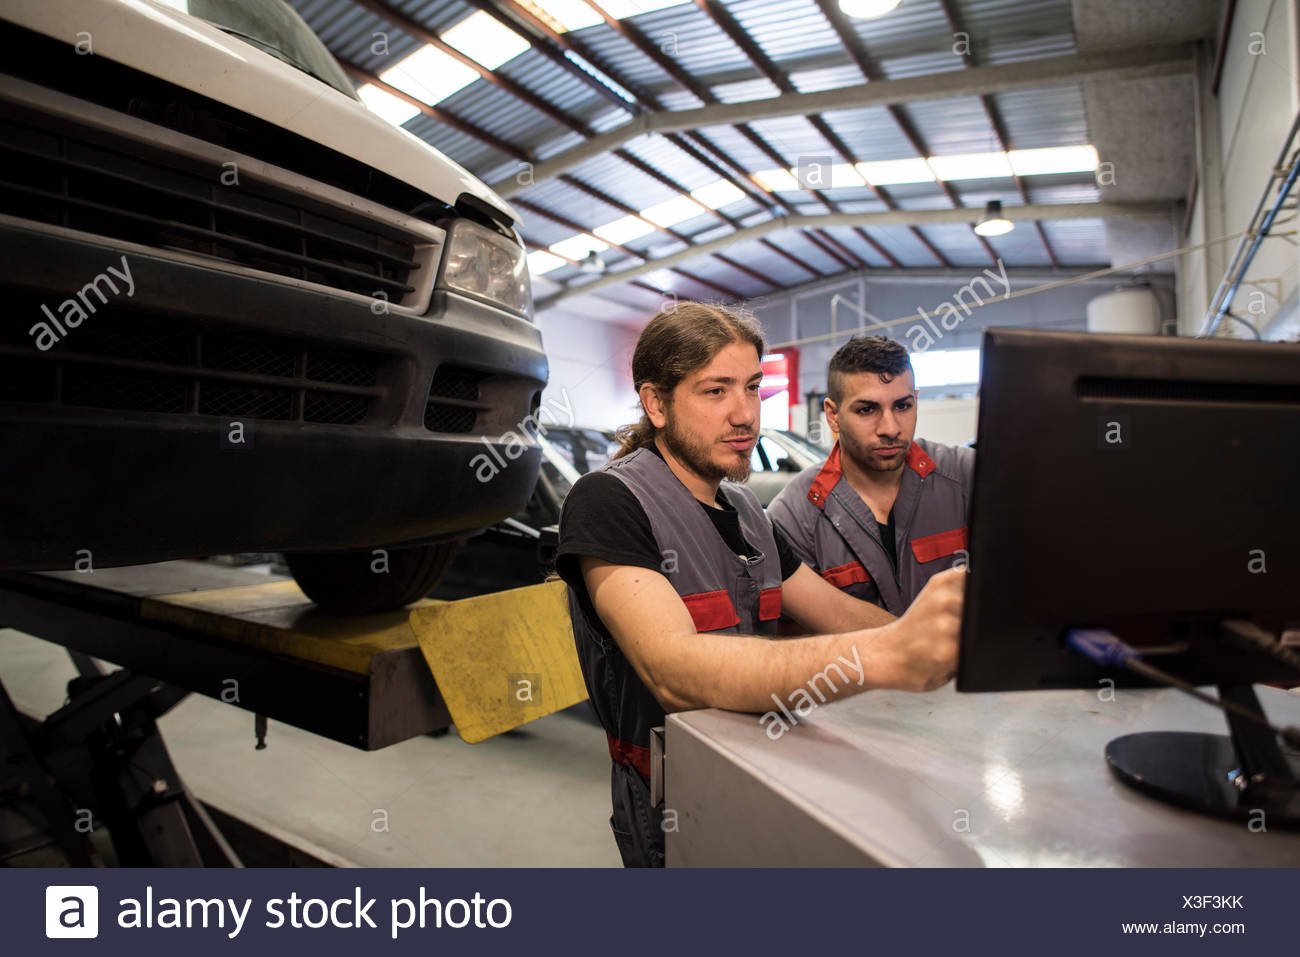 Mechanic calibrating wheels with computer and technology equipment - Stock Image